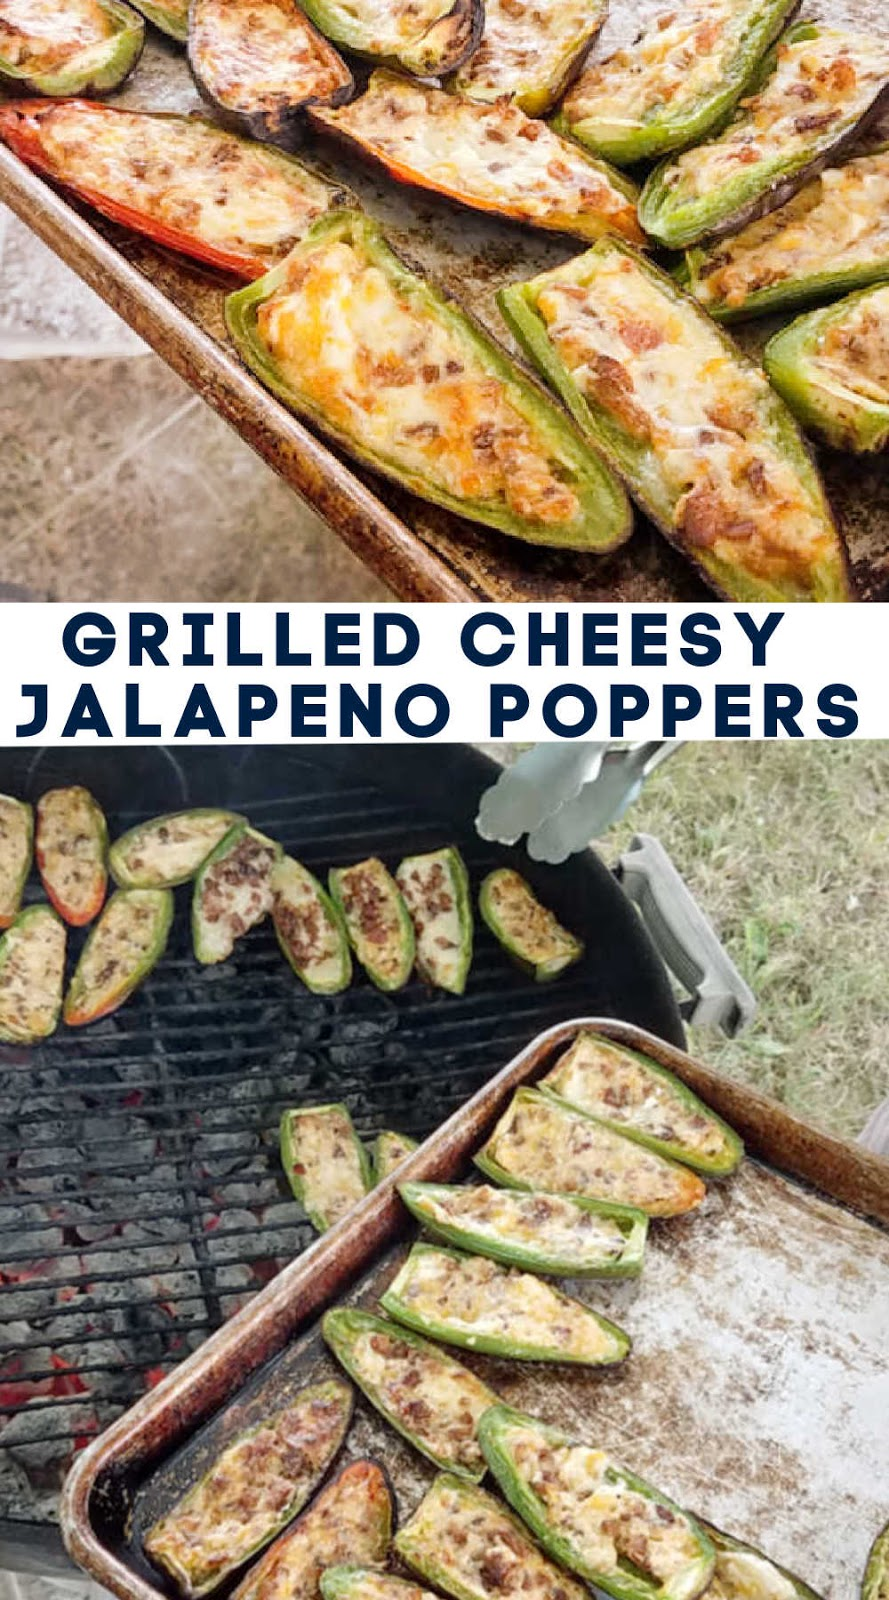 Jalapenos stuffed with gooey cheese and plenty of bacon make for the perfect part spicy part cream all delicious appetizer. We have them almost every week during the summer!